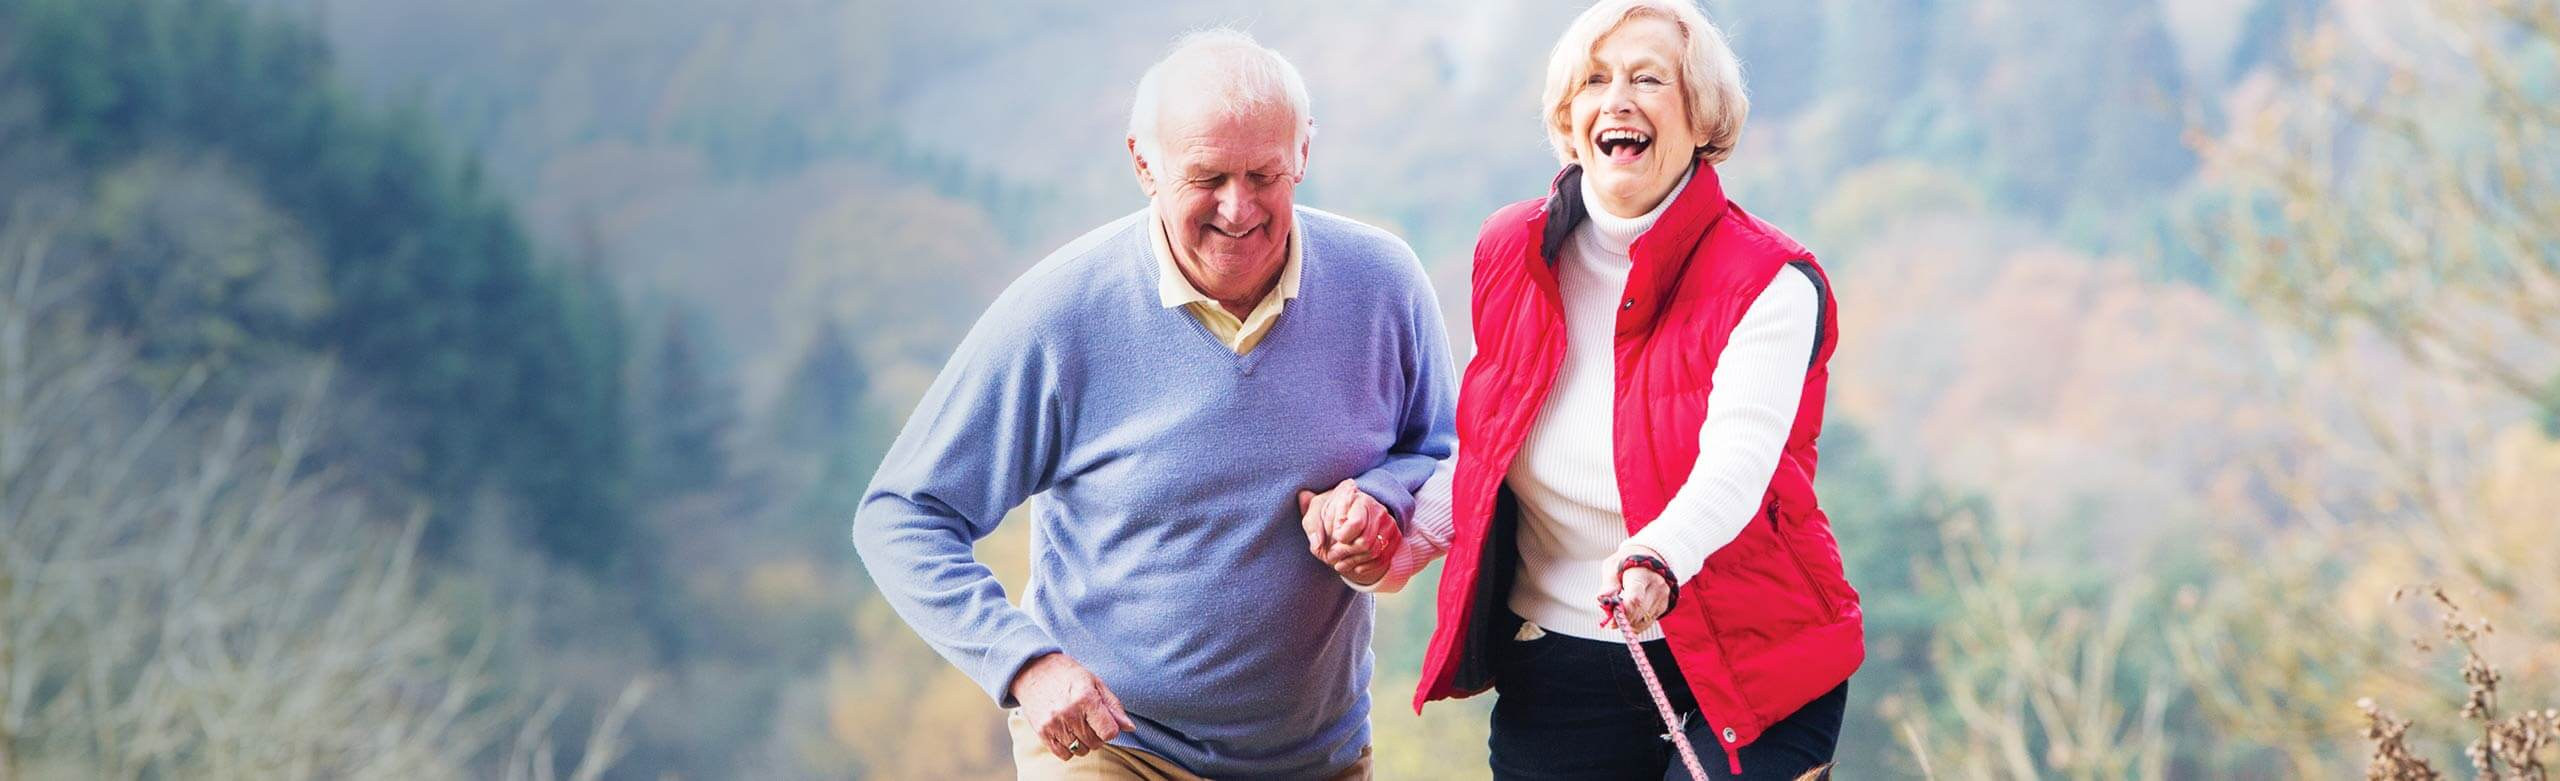 Man and woman walking outside while holding hands and laughing